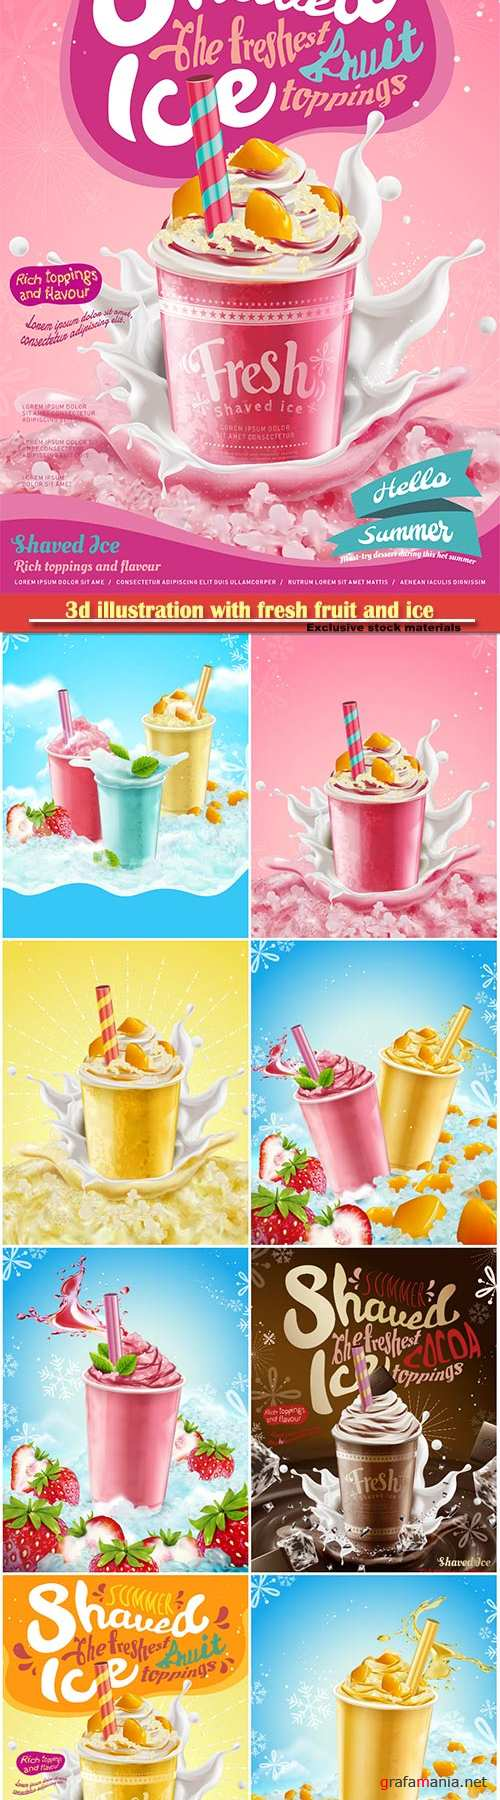 3d illustration with fresh fruit and ice elements, syrup ice shaved ads with creamy topping and splashing